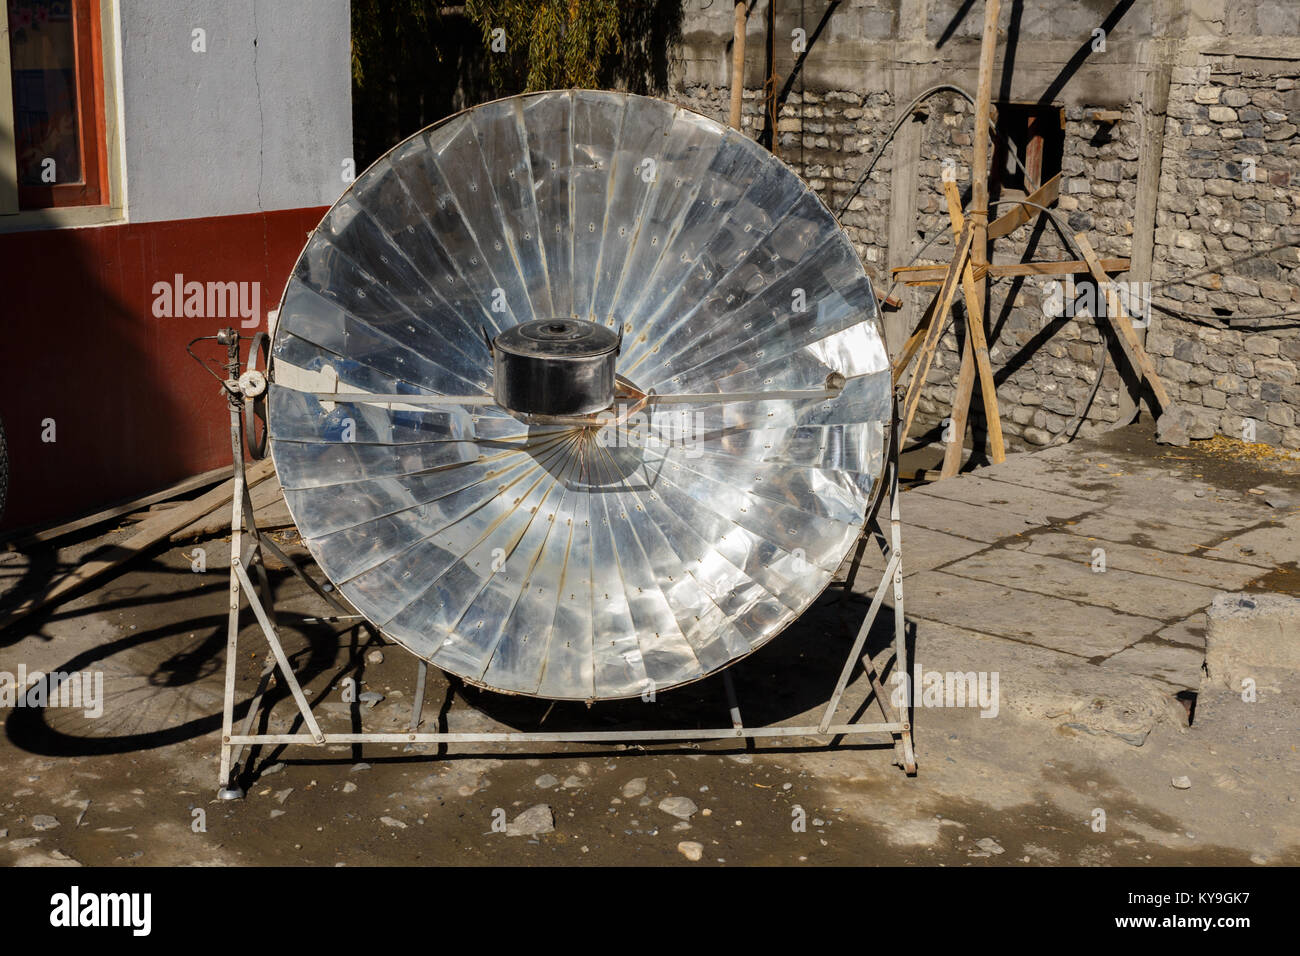 Eco-friendly solar heater for boiling water in the himalayan mountains in Nepal. - Stock Image